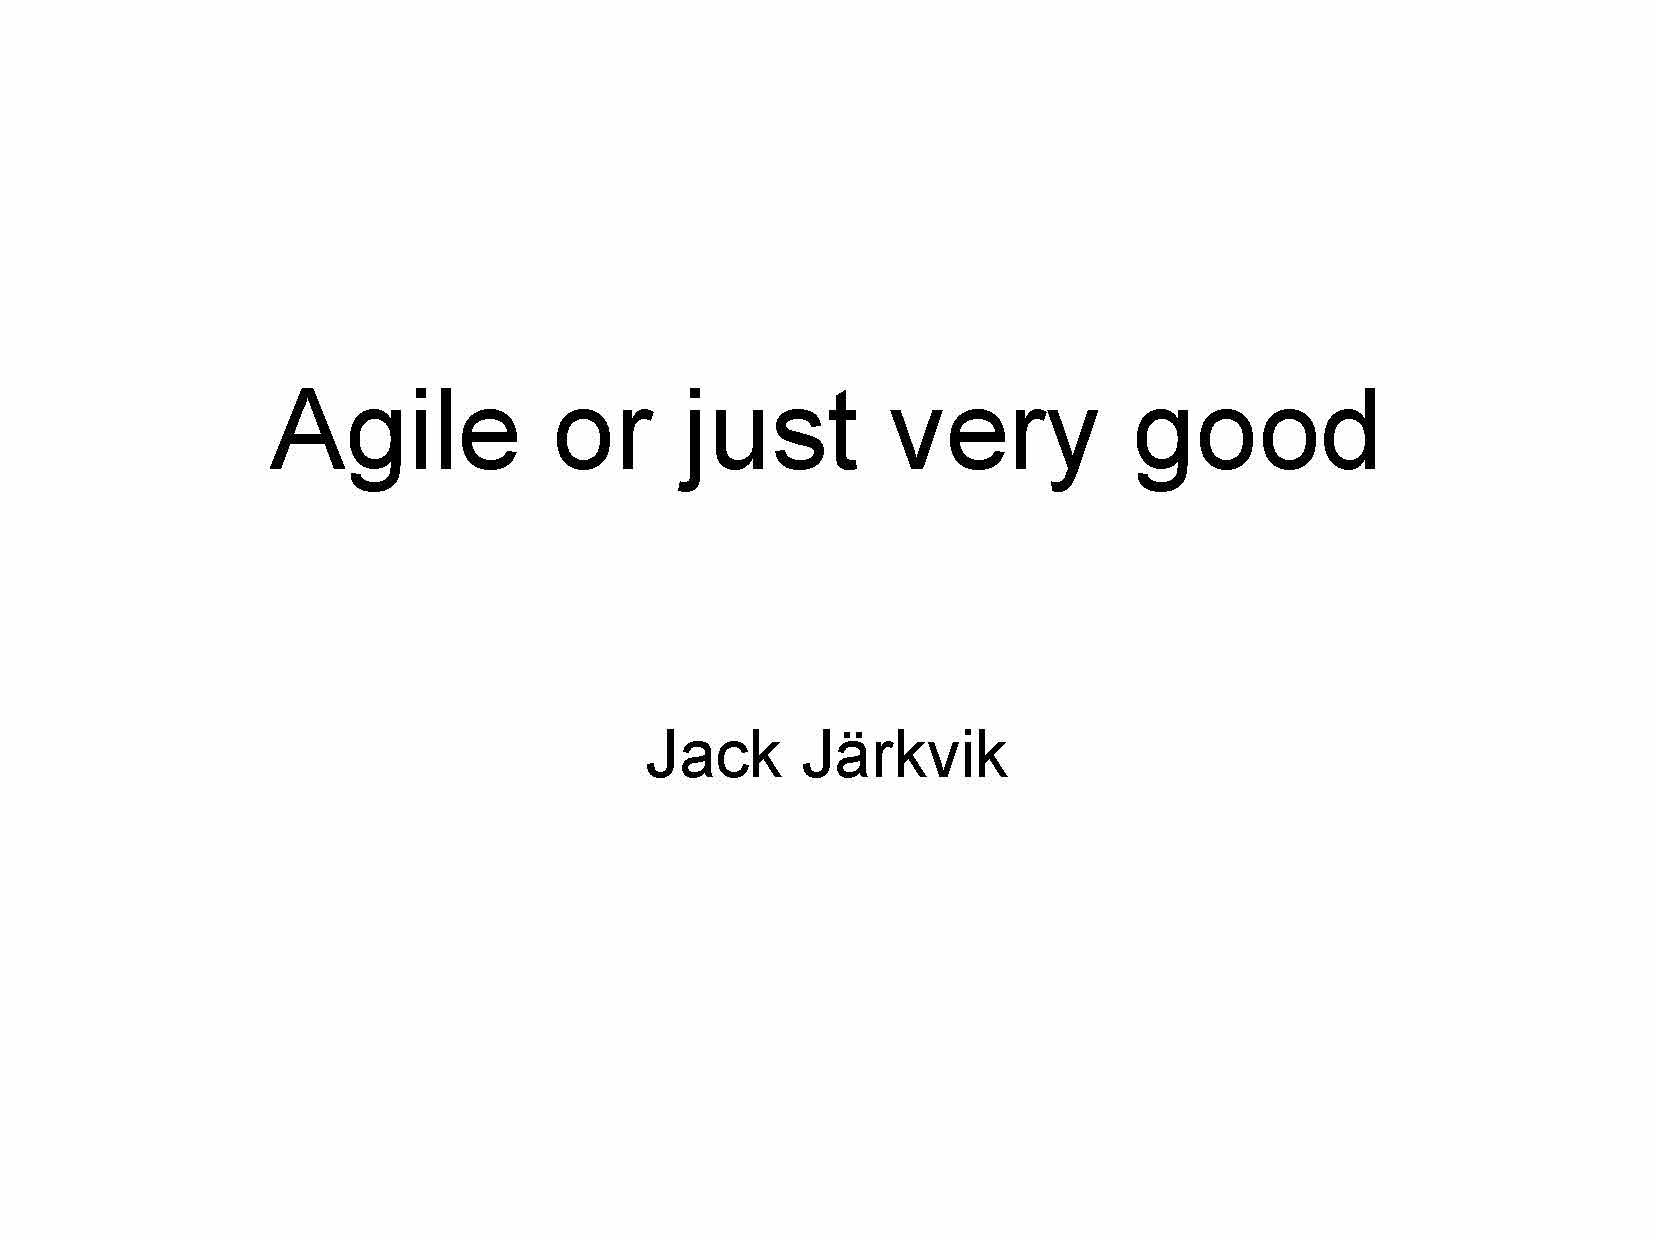 Jack-Agile or just very good